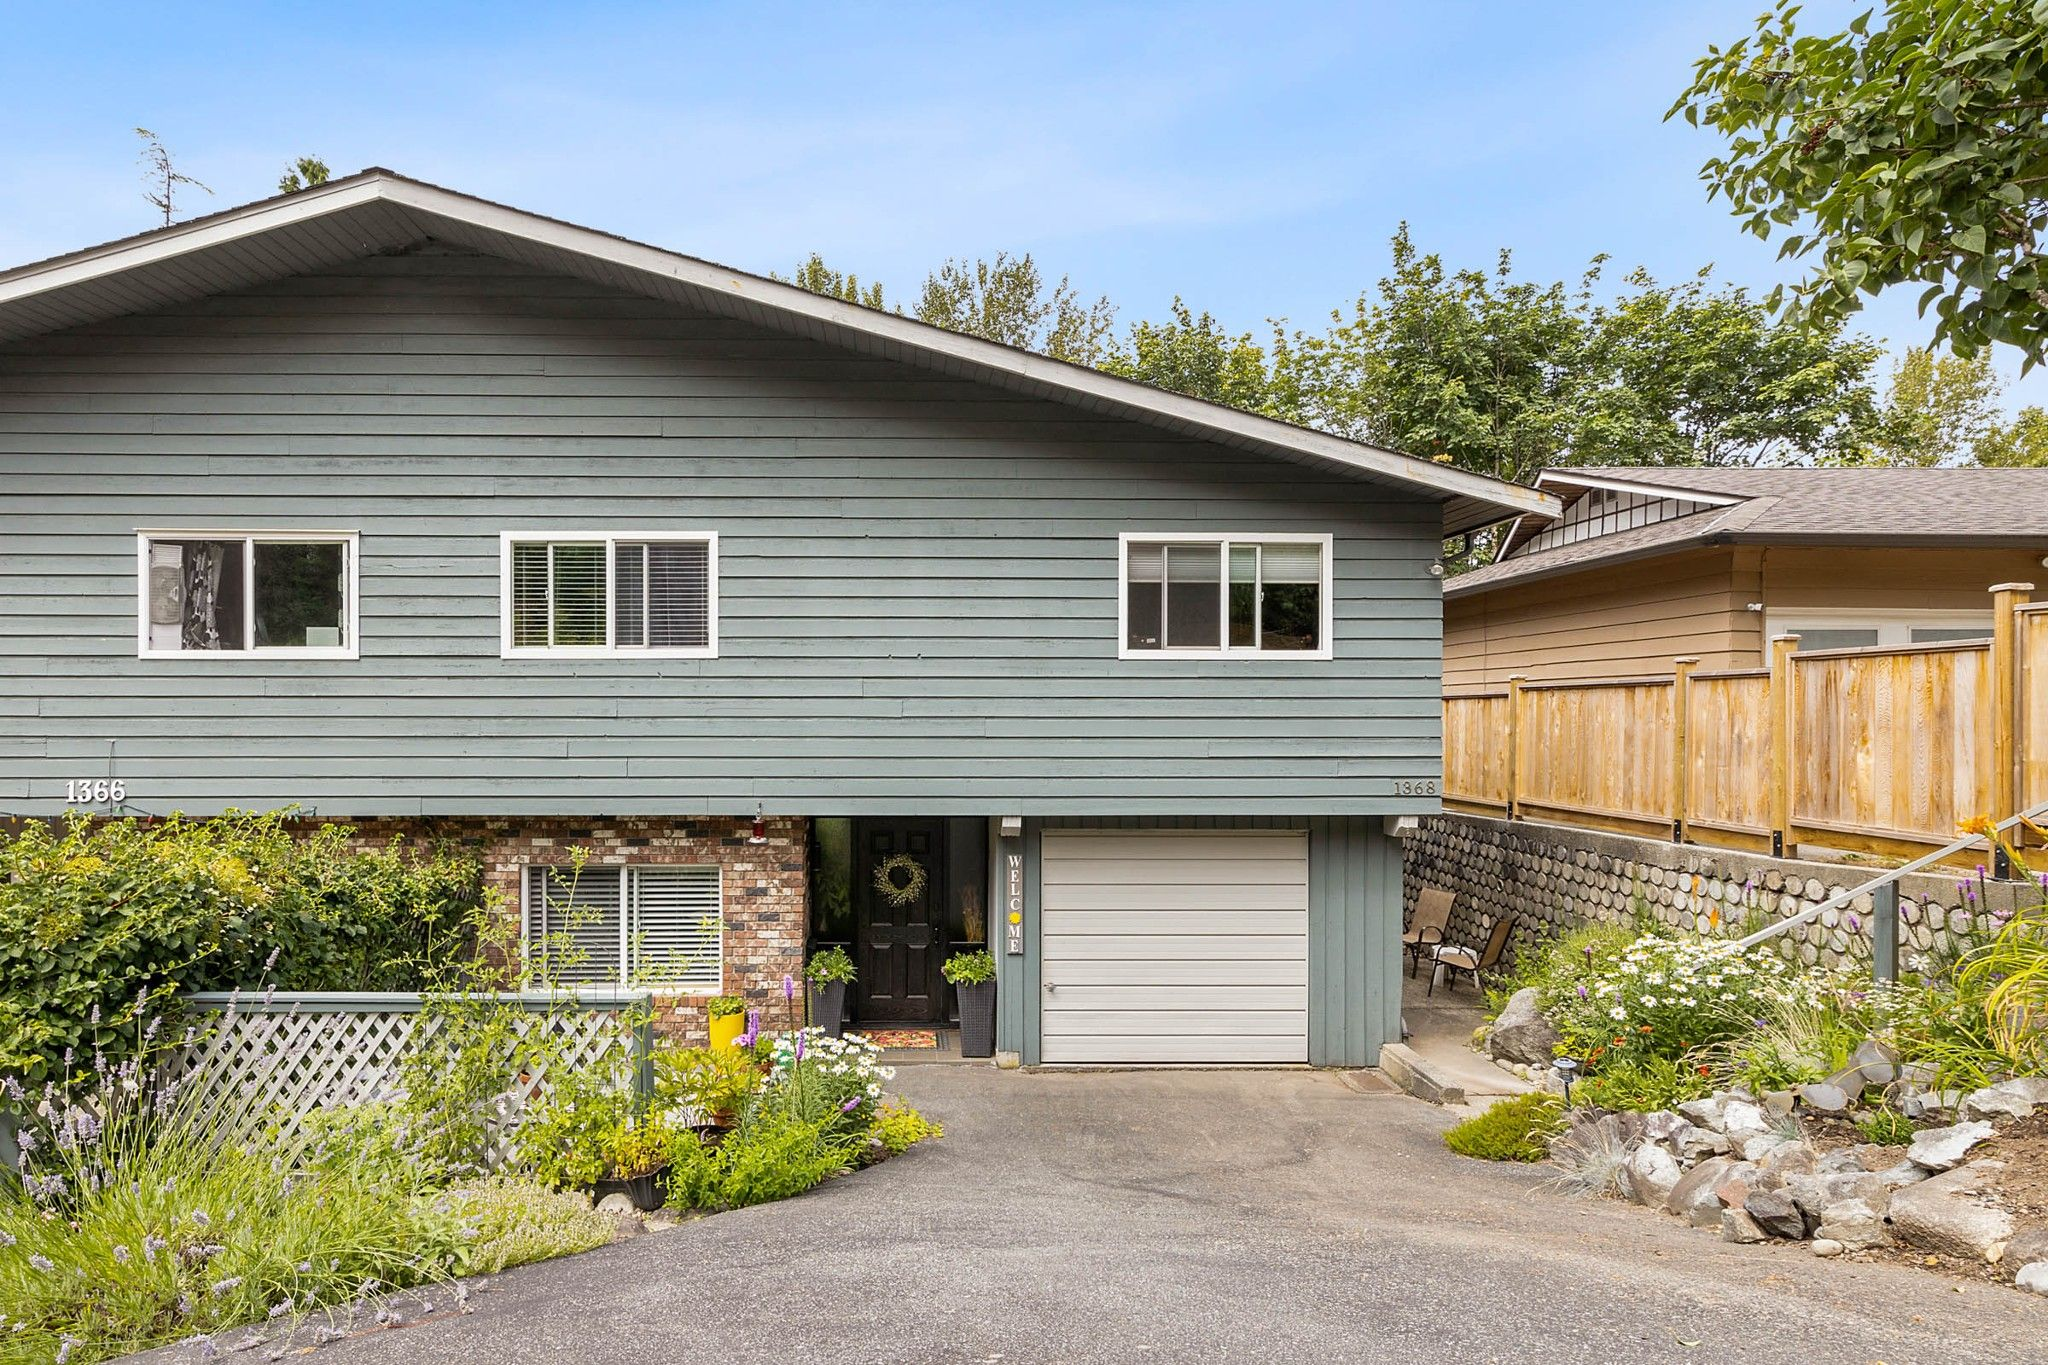 Main Photo: 1368 MARY HILL Lane in Port Coquitlam: Mary Hill 1/2 Duplex for sale : MLS®# R2603291